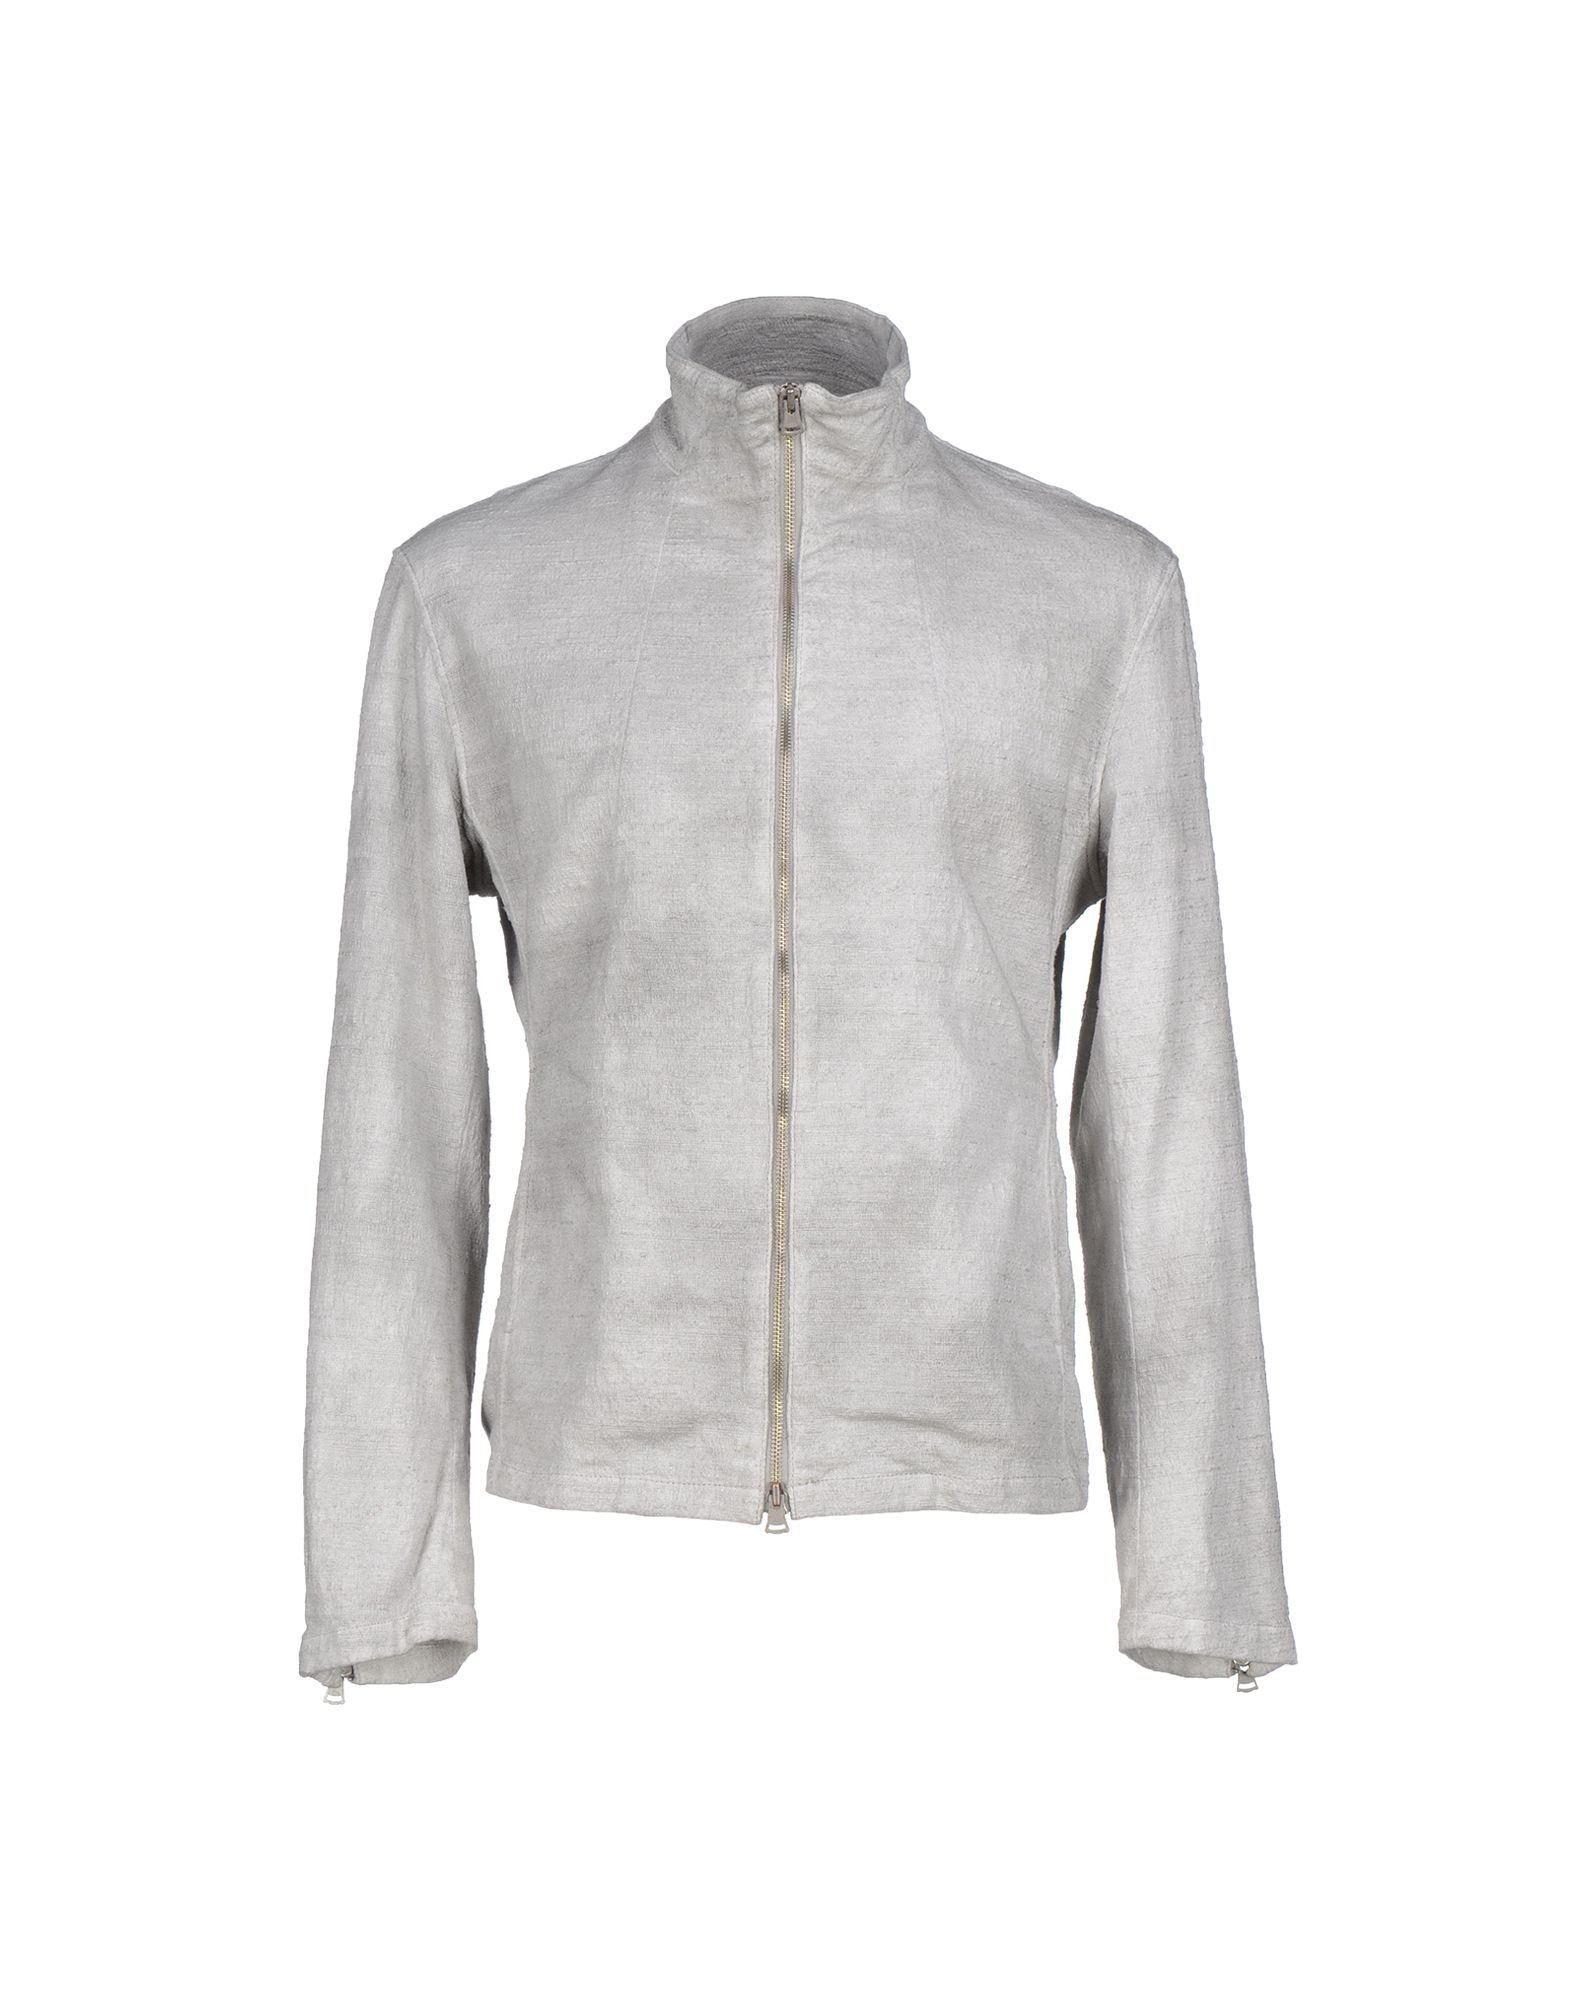 FAGASSENT Jacket in Light Grey